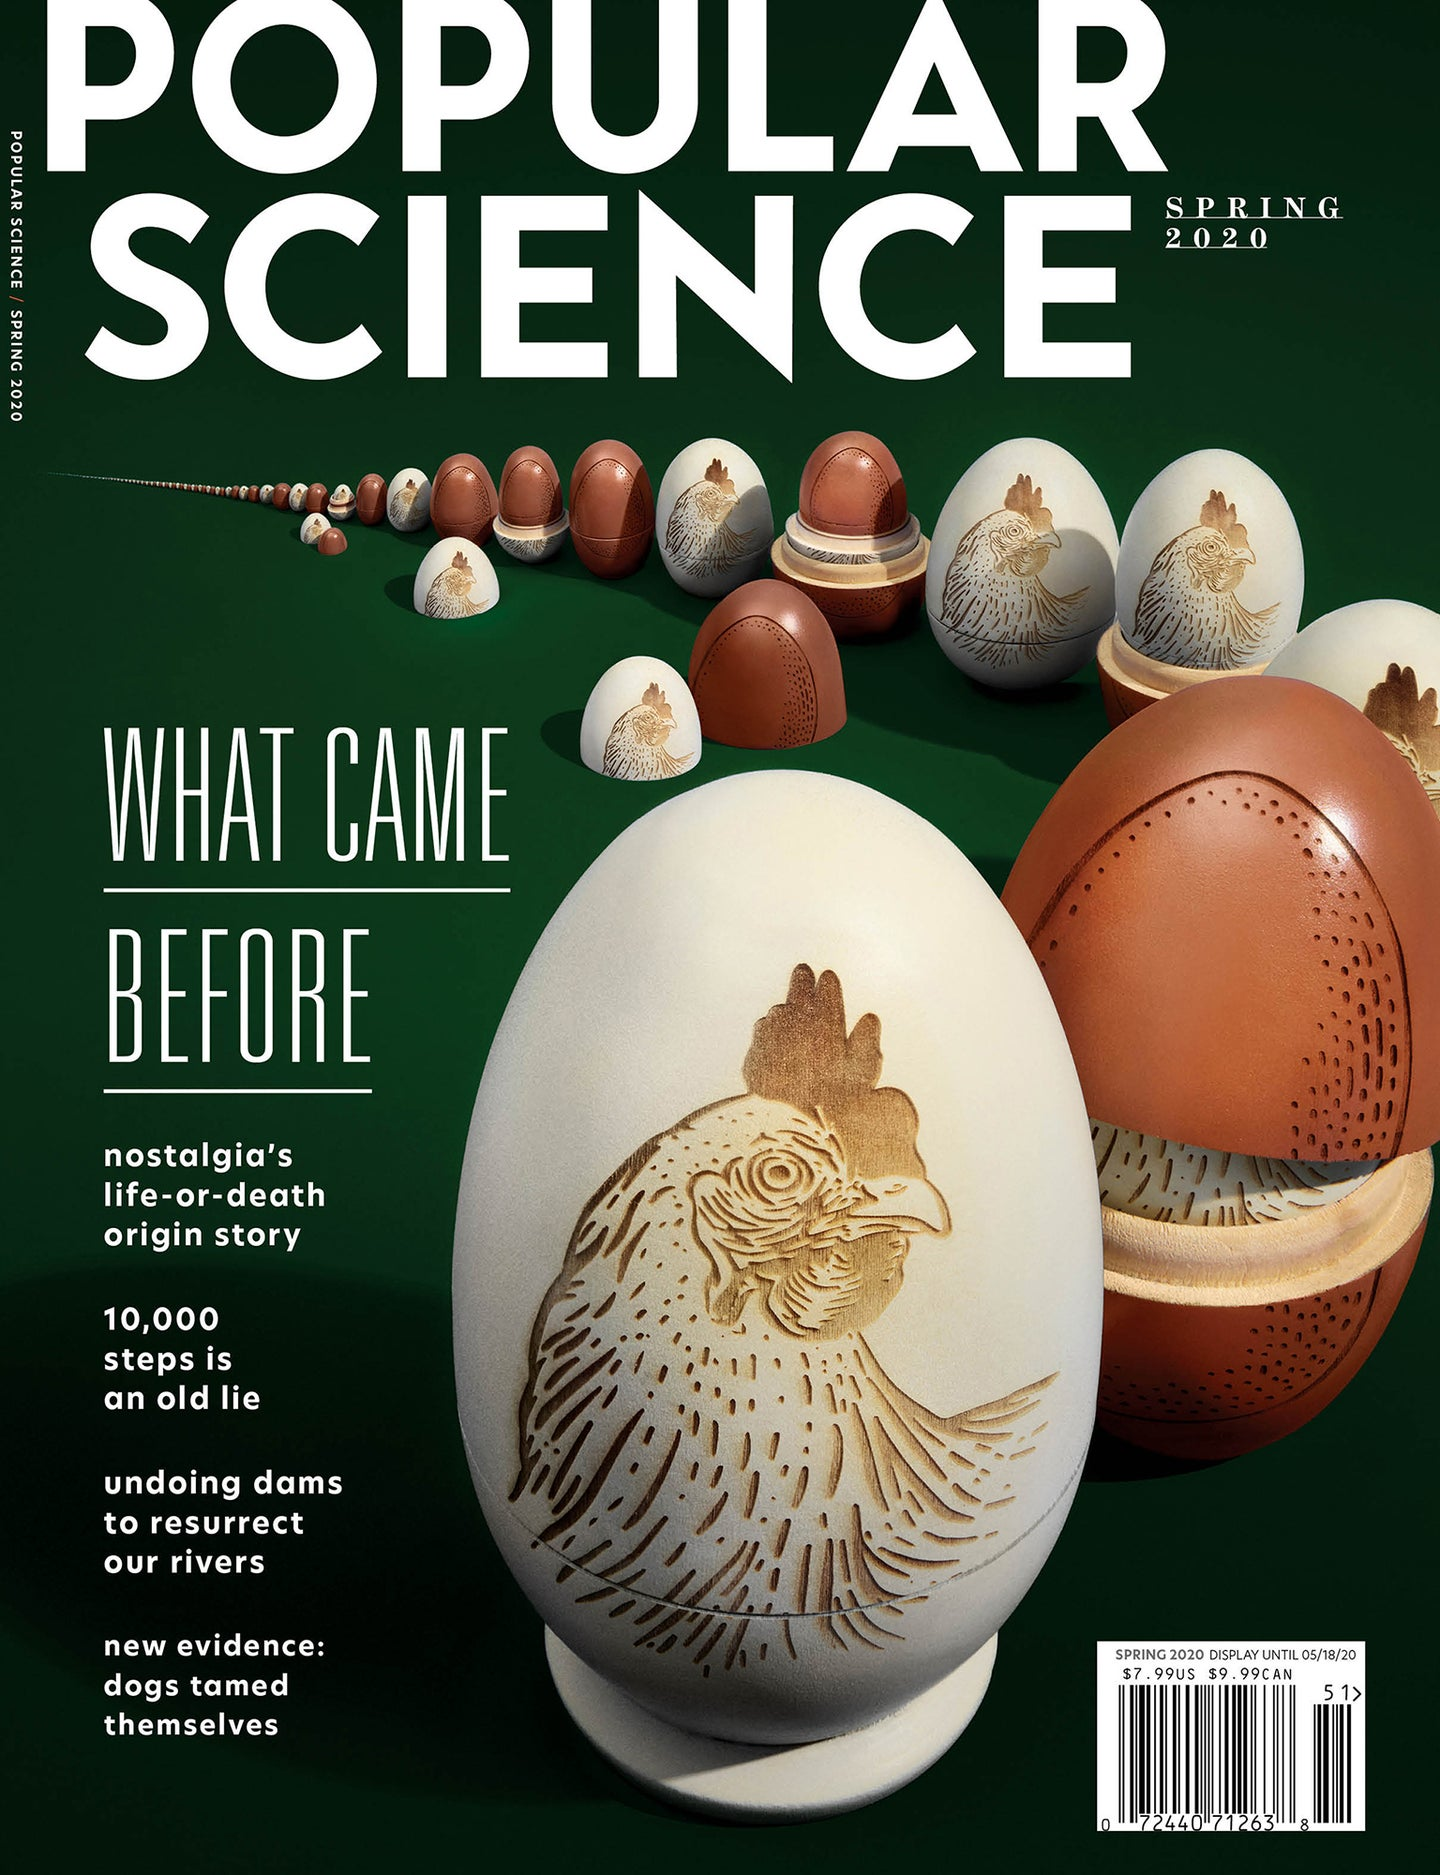 Popular Science Spring 2020 issue cover